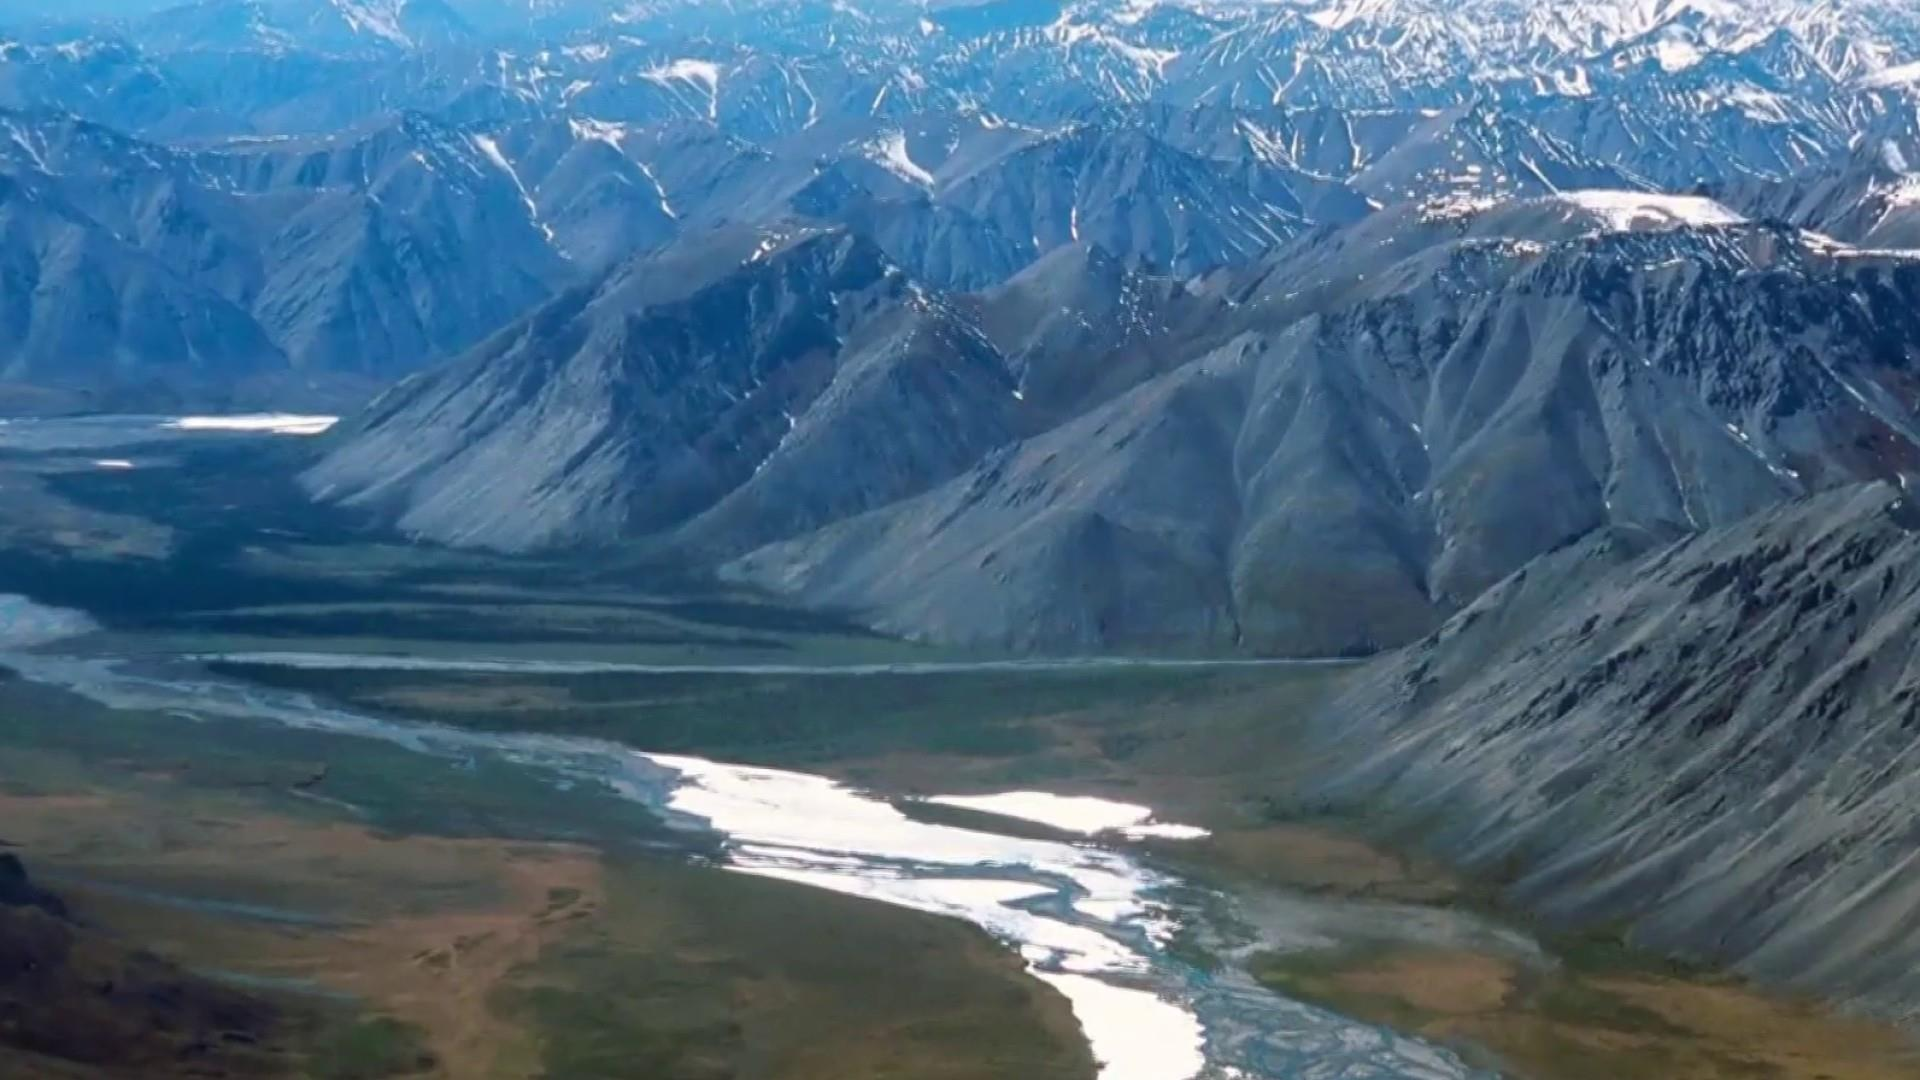 Trump distorts, ignores science in rush to drill Alaska refuge